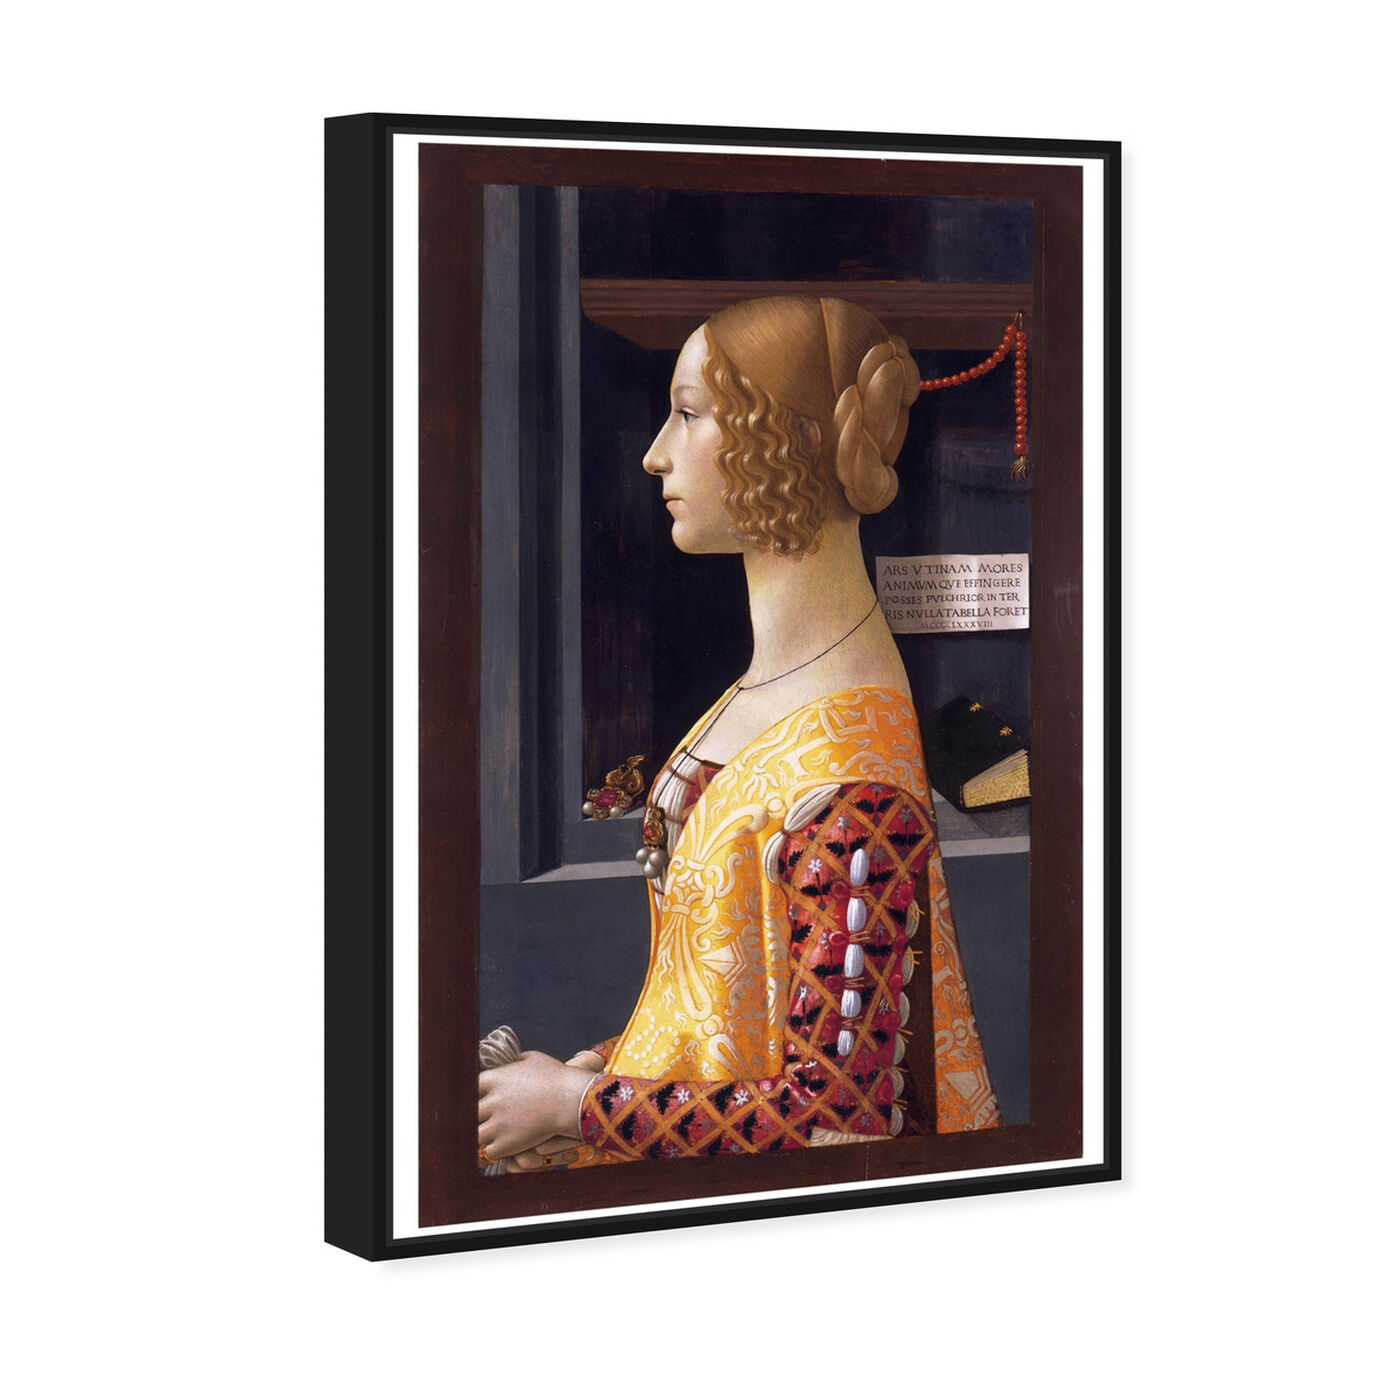 Angled view of Ghirlandaio - Giovanna Tornabuoni featuring classic and figurative and renaissance art.